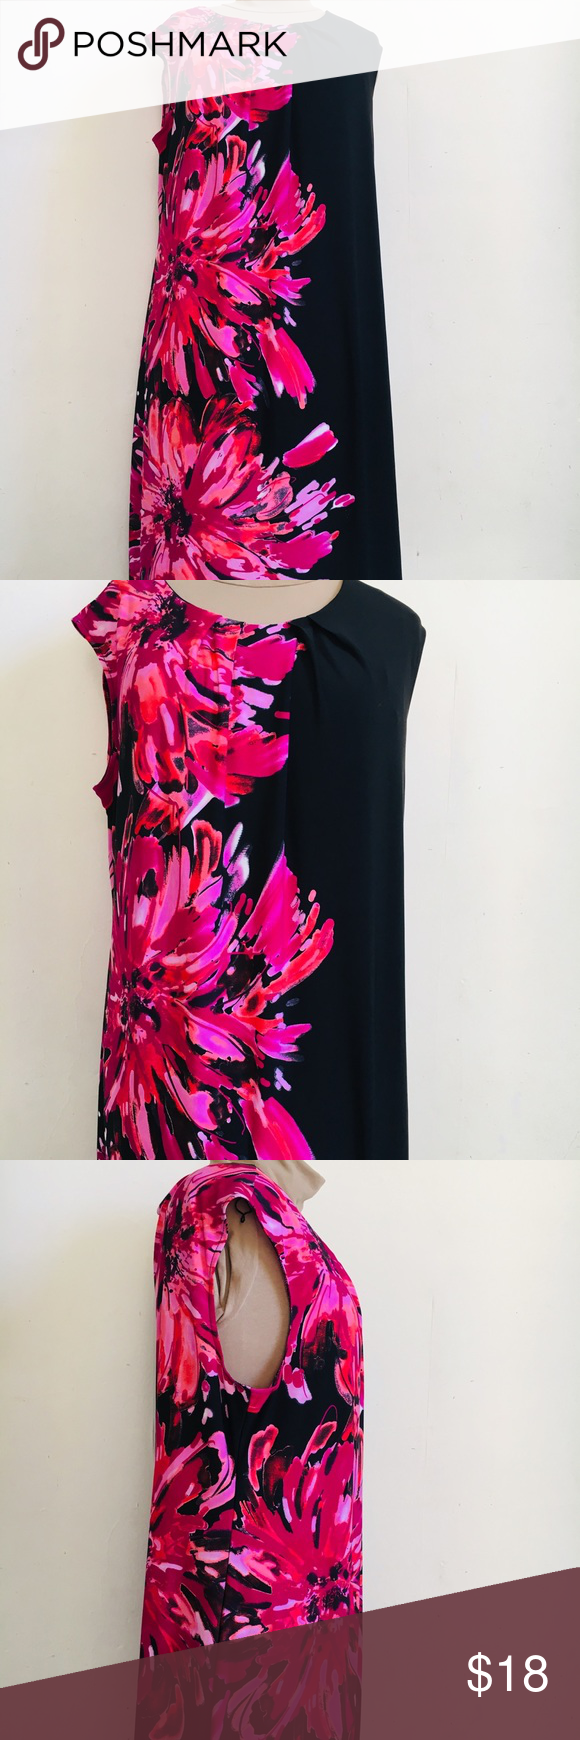 Deessbarn Dress Black And Roses Pink Size 18 Black Dress Dress Barn Dresses Dresses [ 1740 x 580 Pixel ]